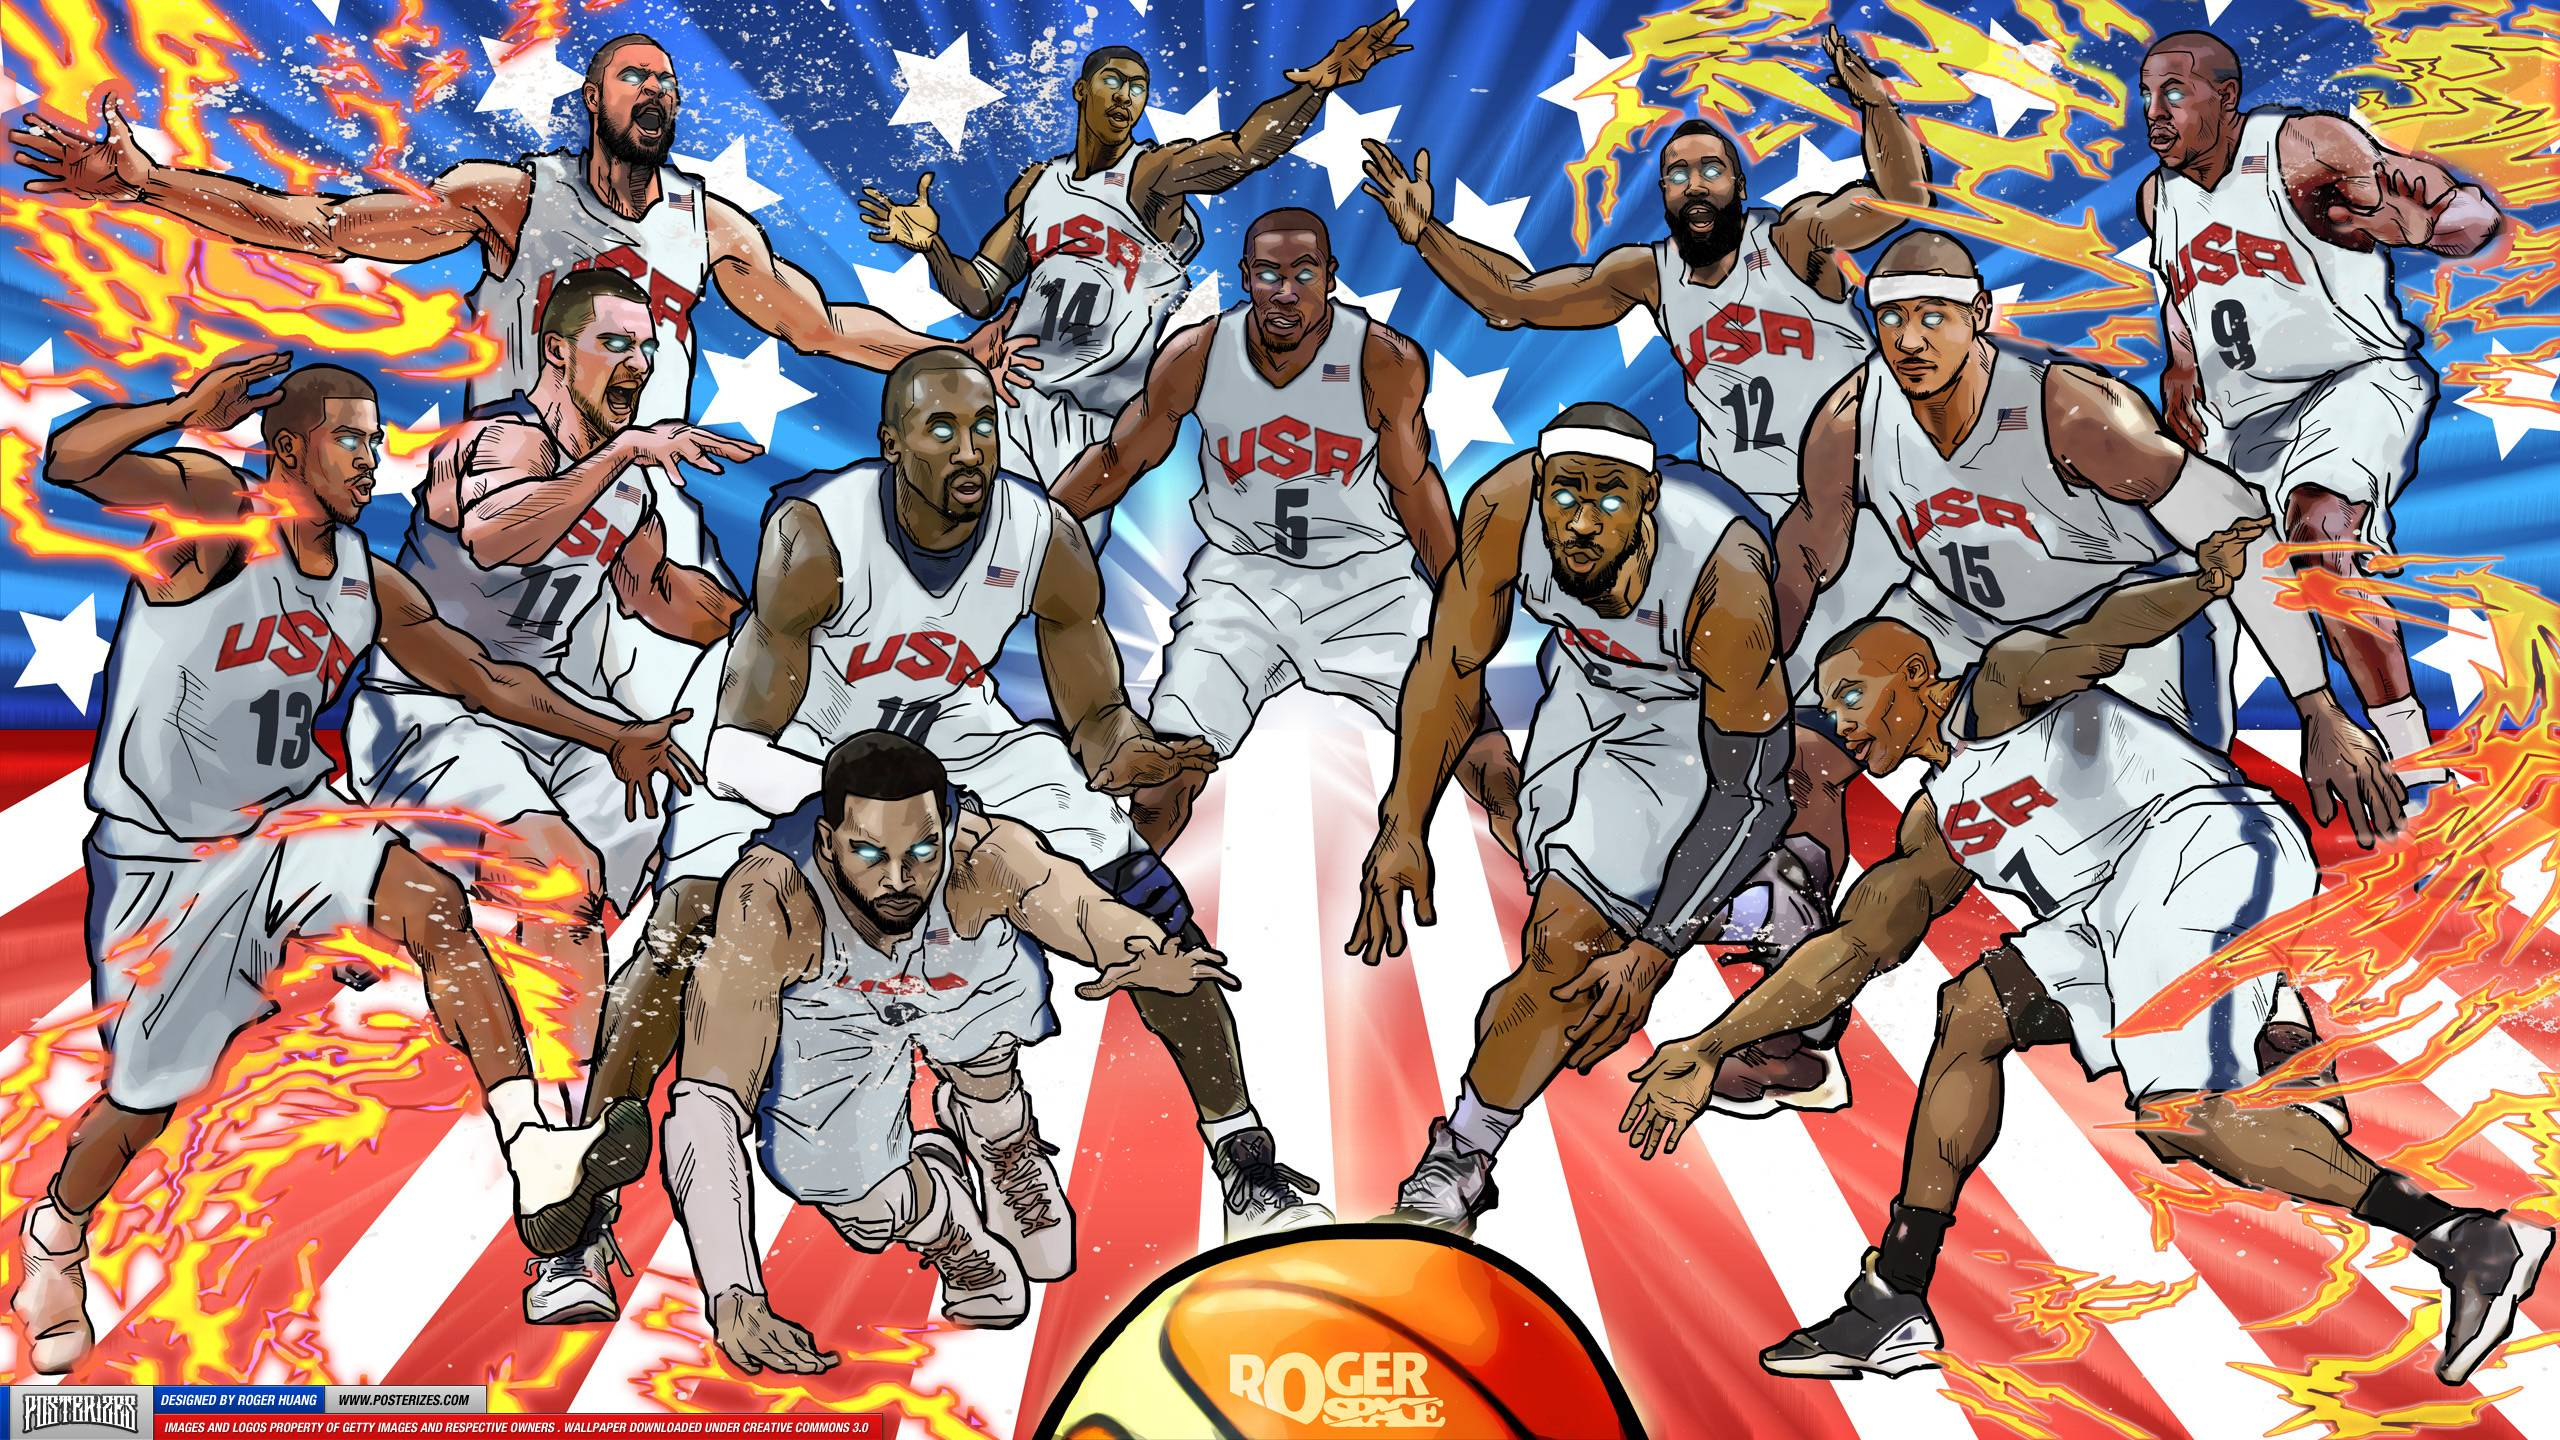 Nba Wallpapers 2015 New - Wallpaper Cave